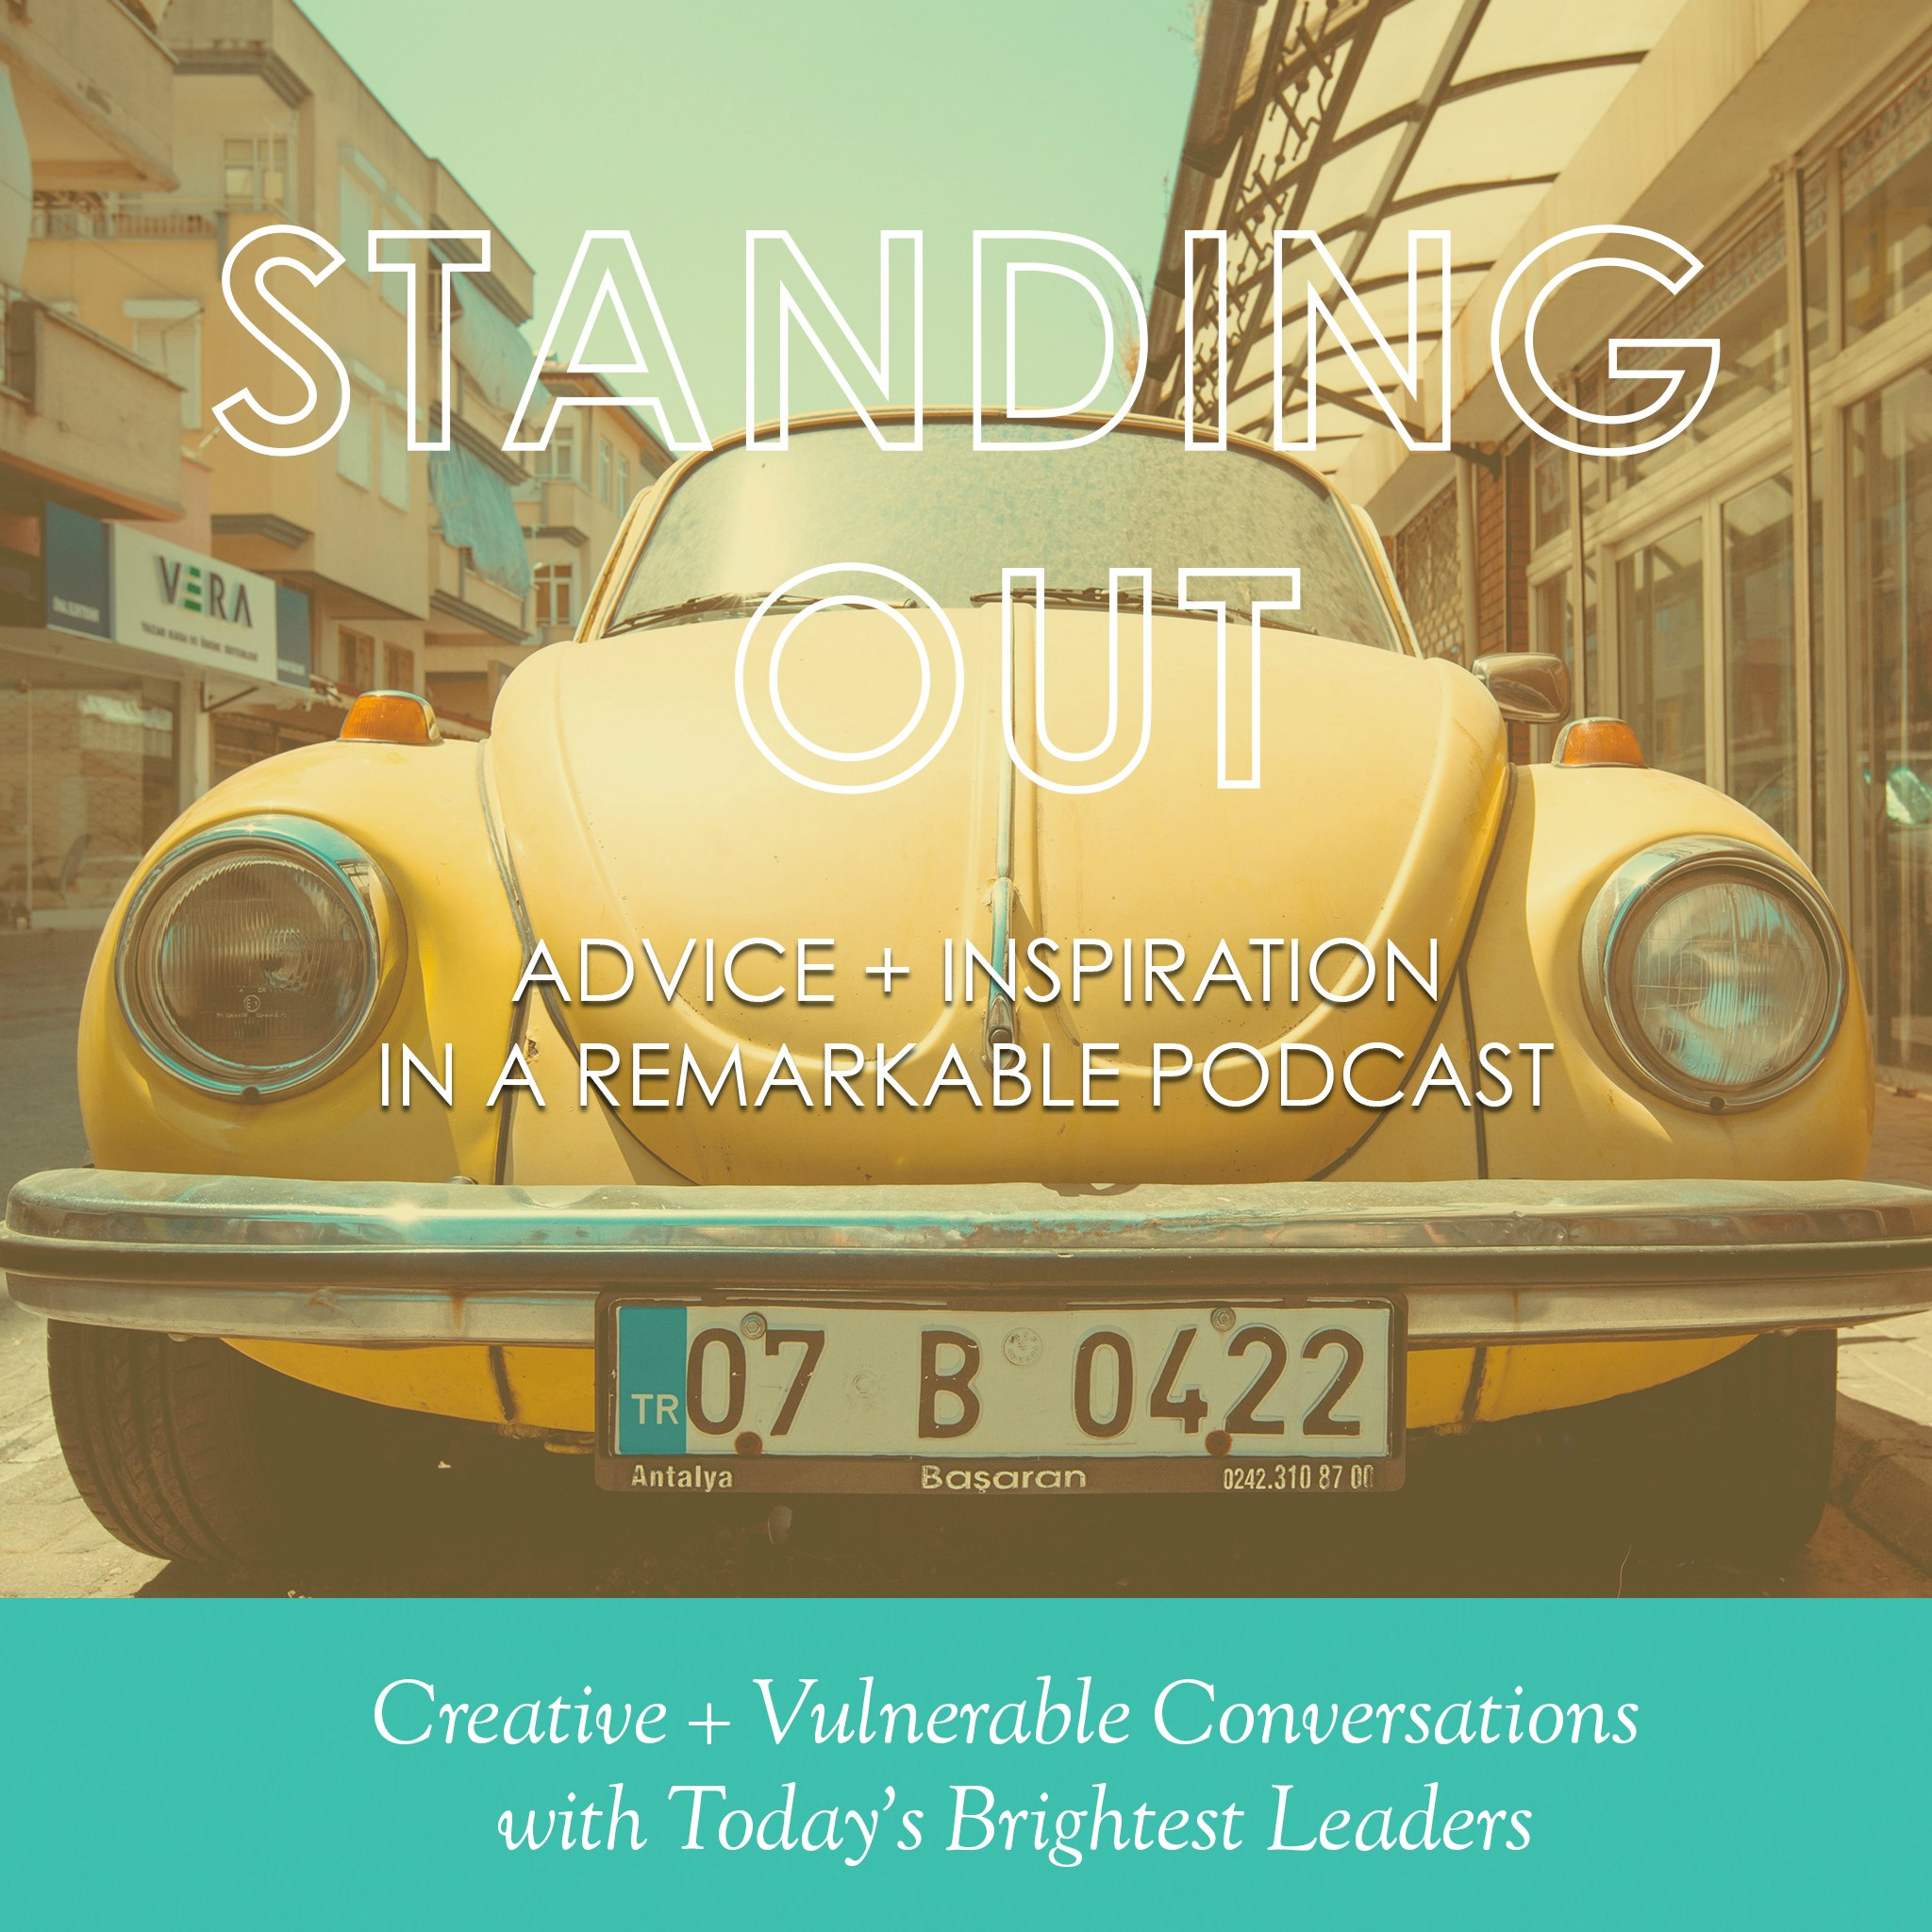 #StandingOut with Brenda Loube and Katrina Padron